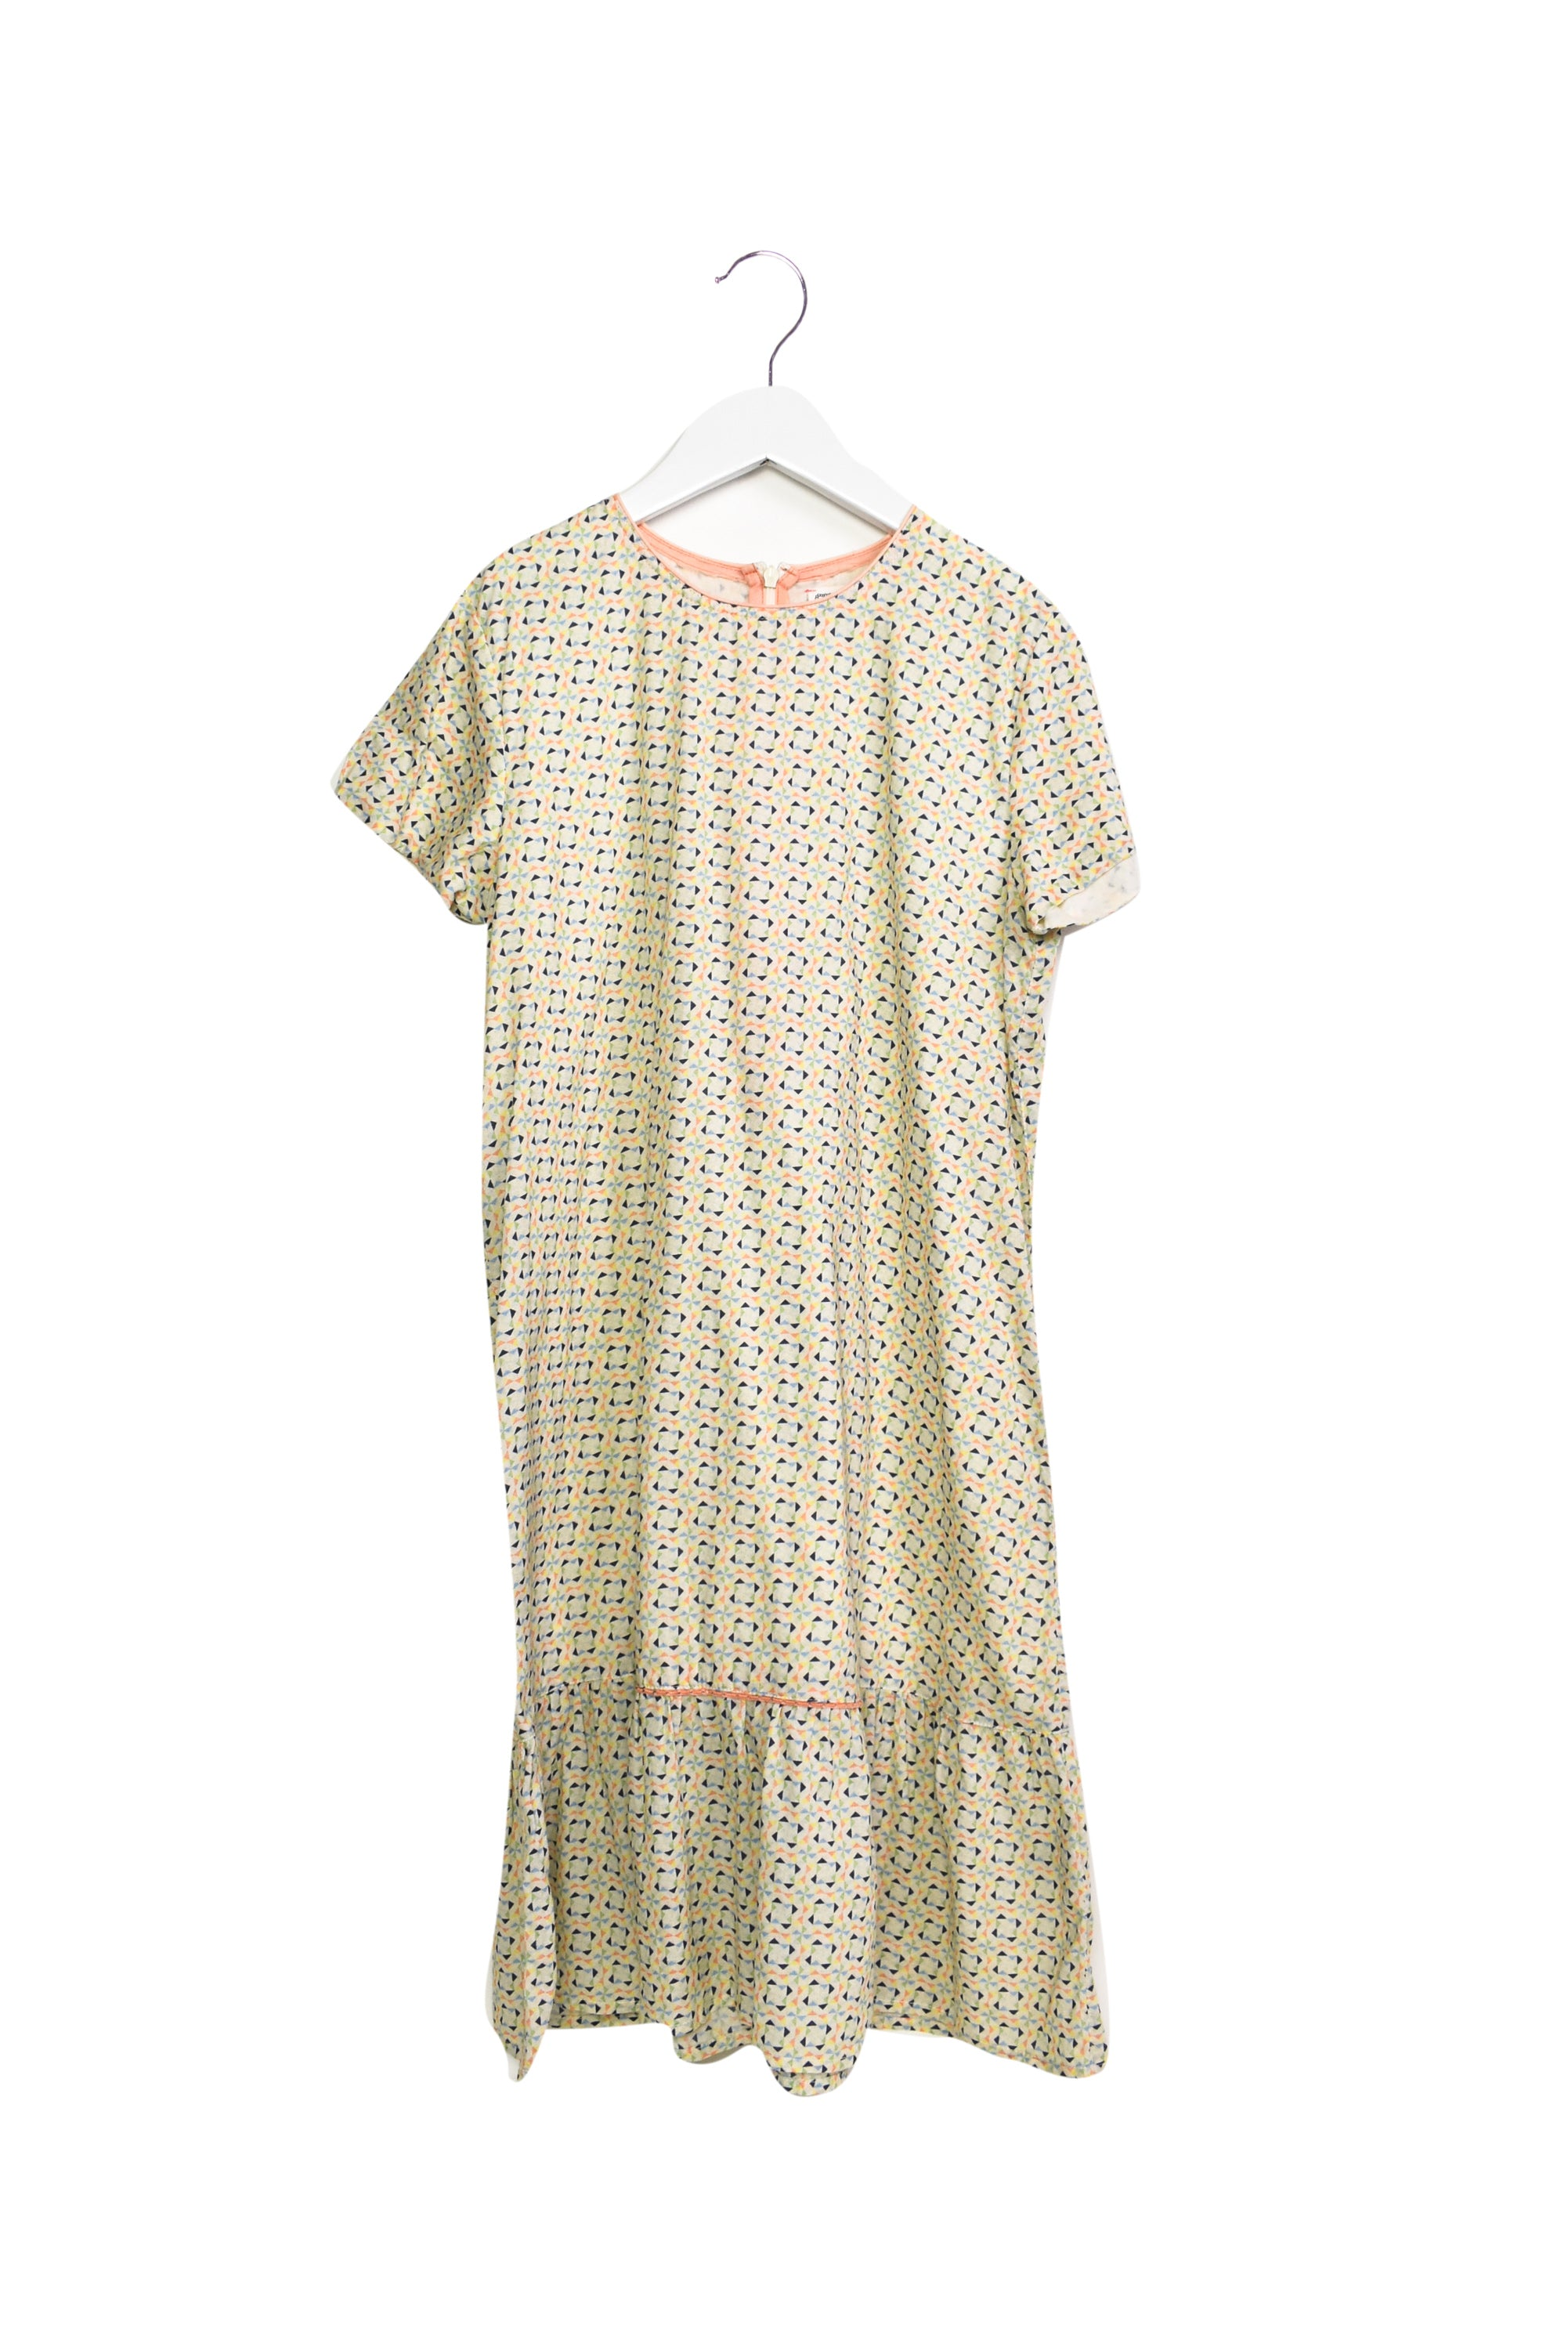 10014860 Bonheur du Jour Kids ~ Dress 12 at Retykle